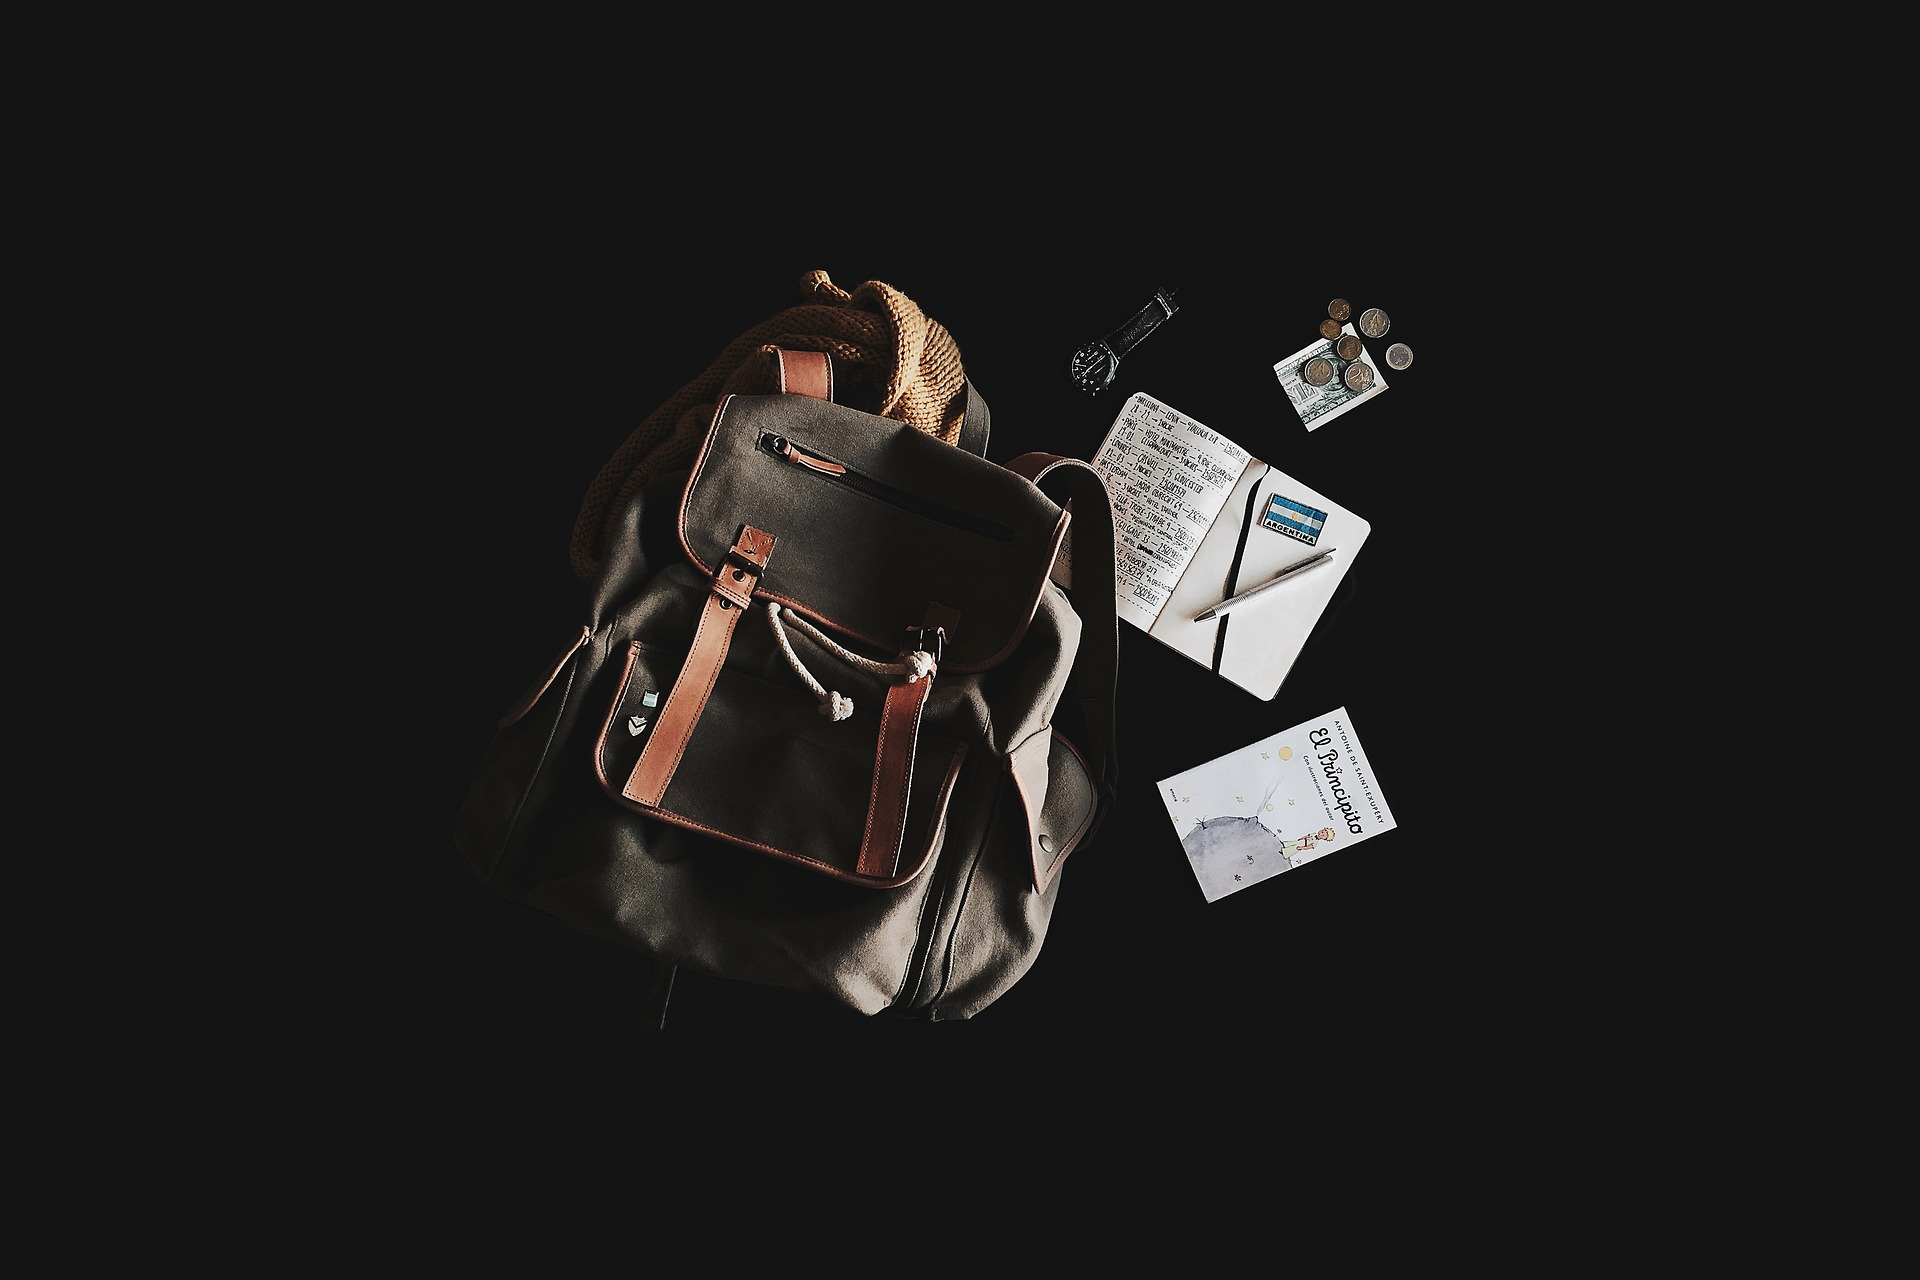 backpack-1839705_1920.jpg